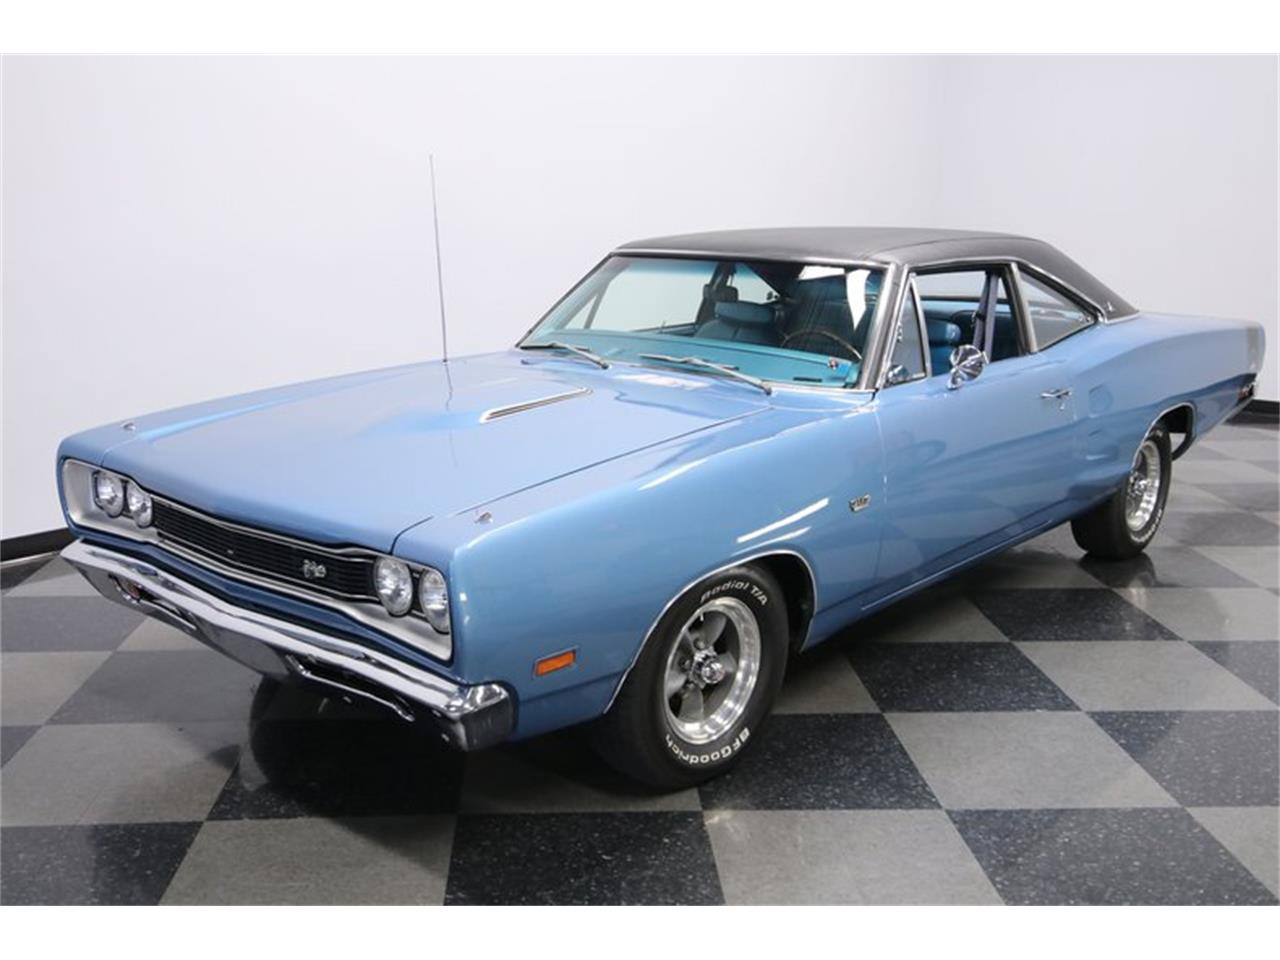 Large Picture of '69 Dodge Super Bee located in Lutz Florida - $43,995.00 - QP0O